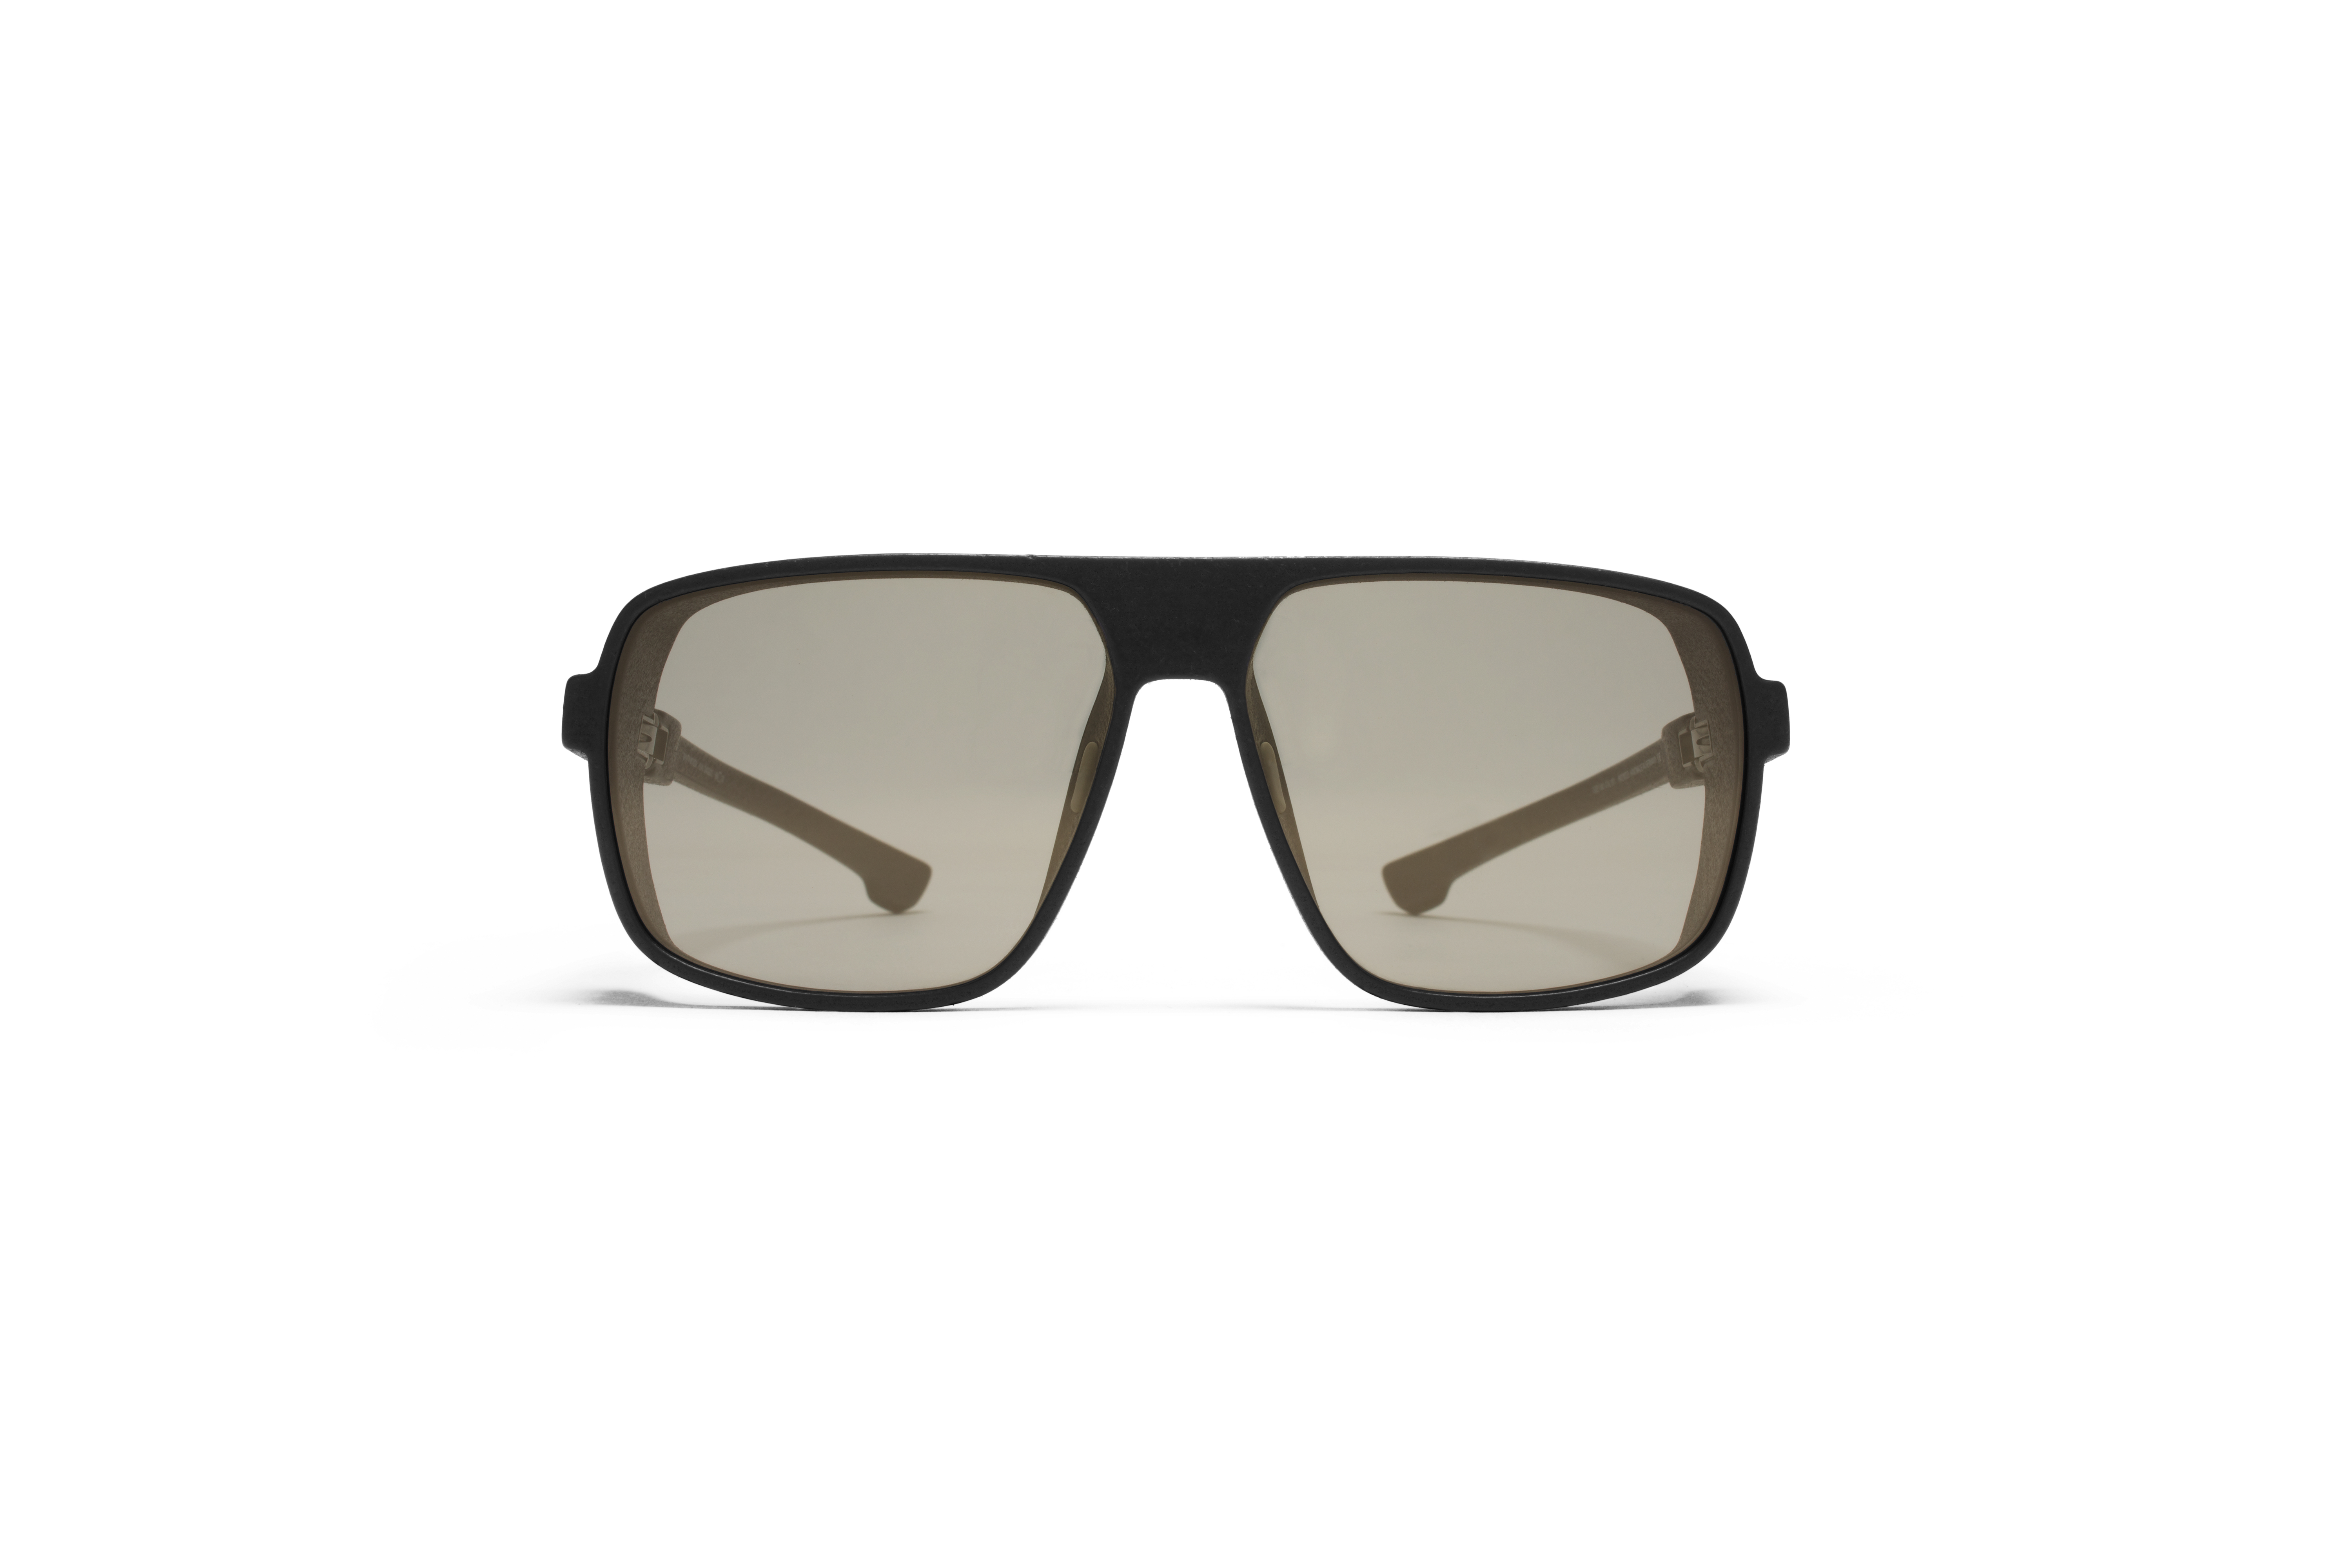 MYKITA Mylon Sun Daggoo Md1 Pitch Black Grey Gunme574ec098efe25